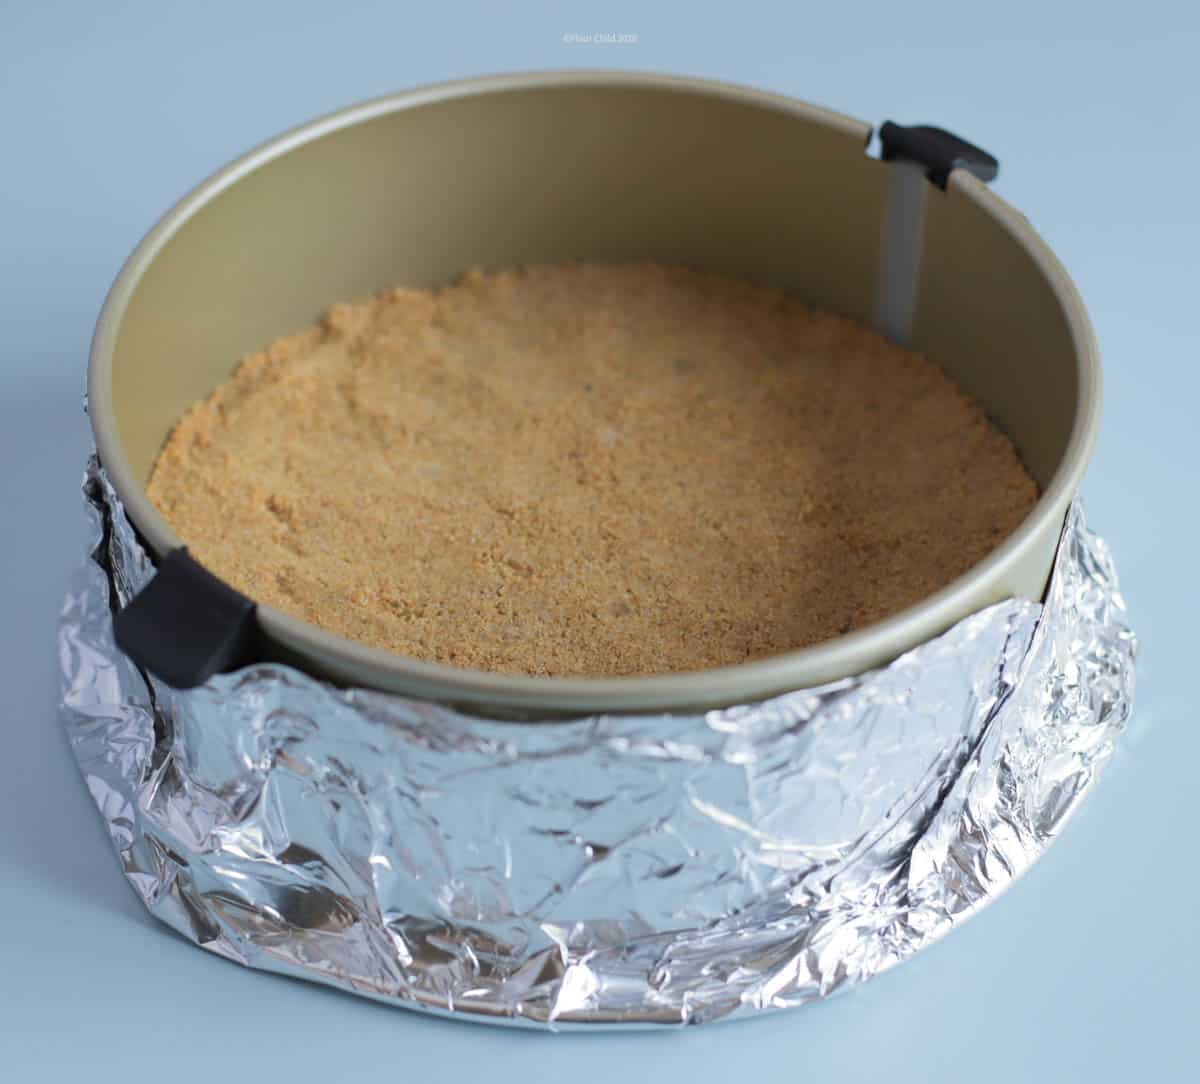 Cheesecake pan with parchment insert and exterior foil wrap